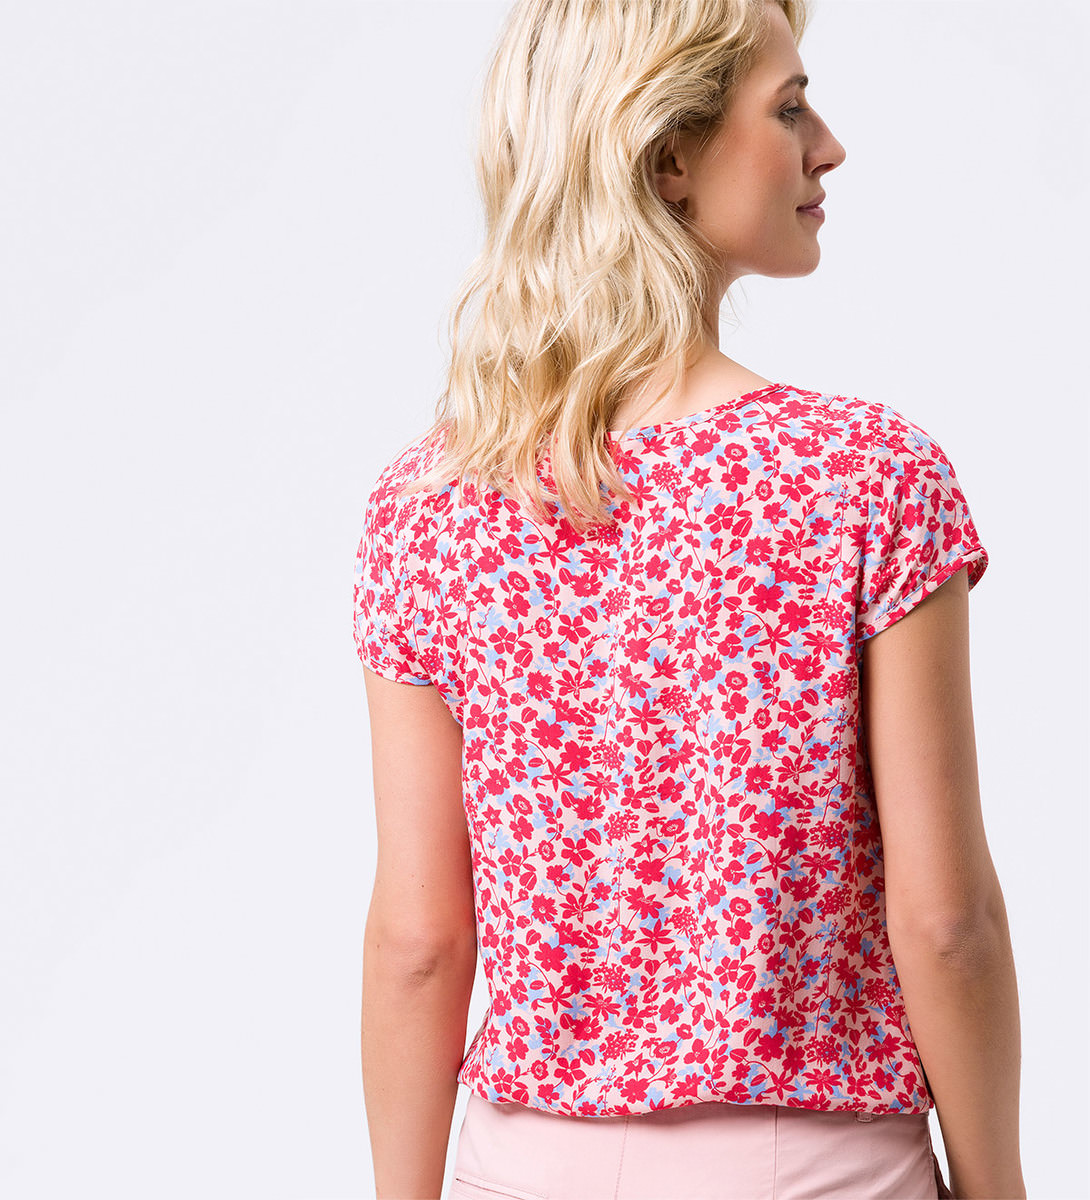 Bluse mit floralem Muster in dusty pink